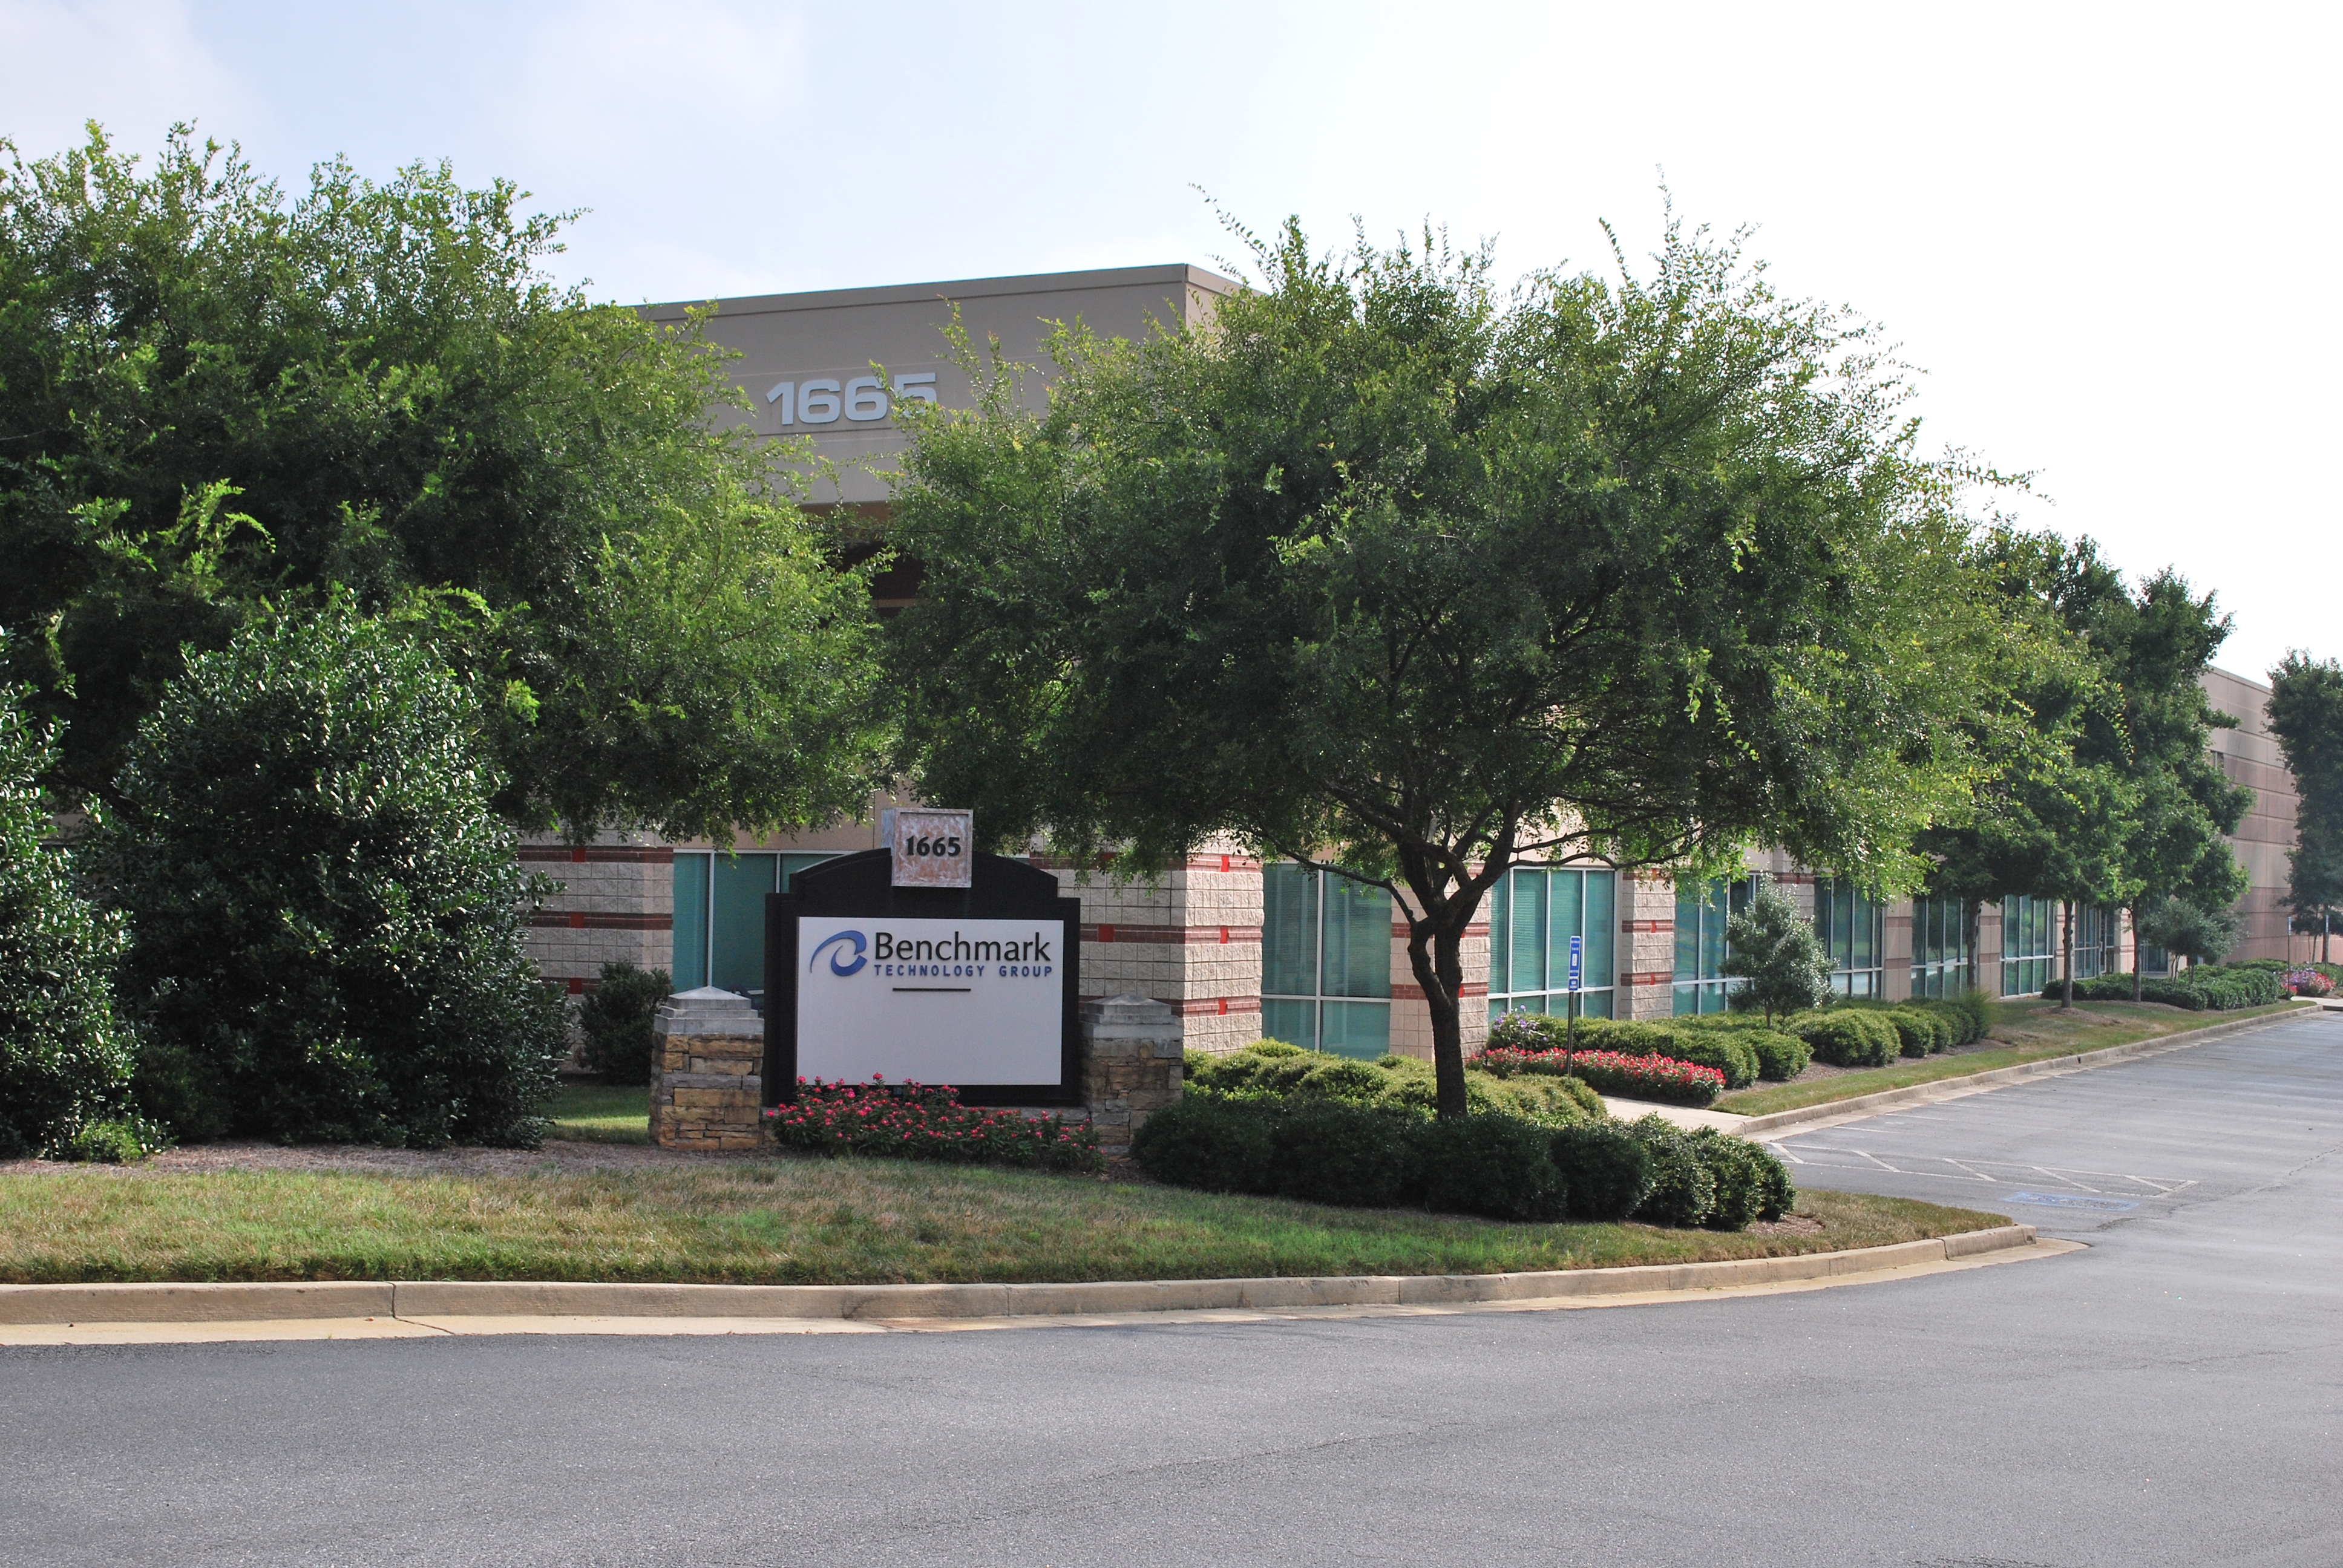 Benchmark Technology Group is located in Alpharetta, Georgia